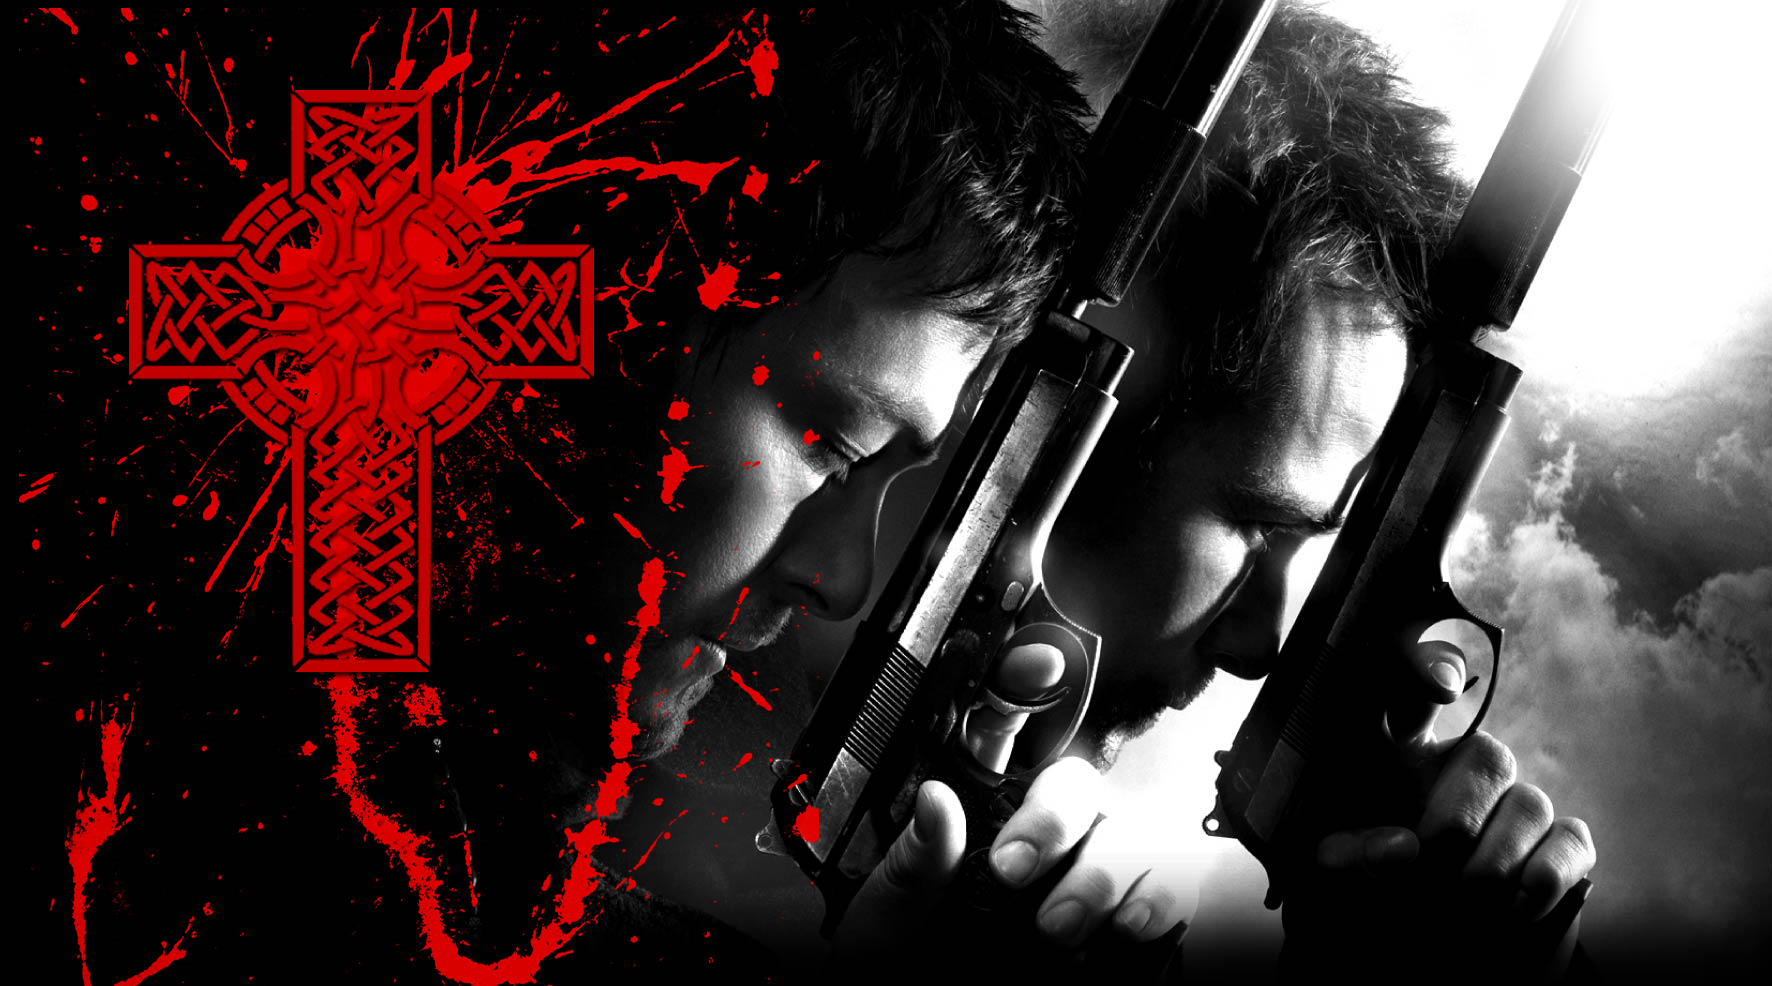 boondock saints wallpaper by jimeye fan art wallpaper movies tv 2009 1772x986